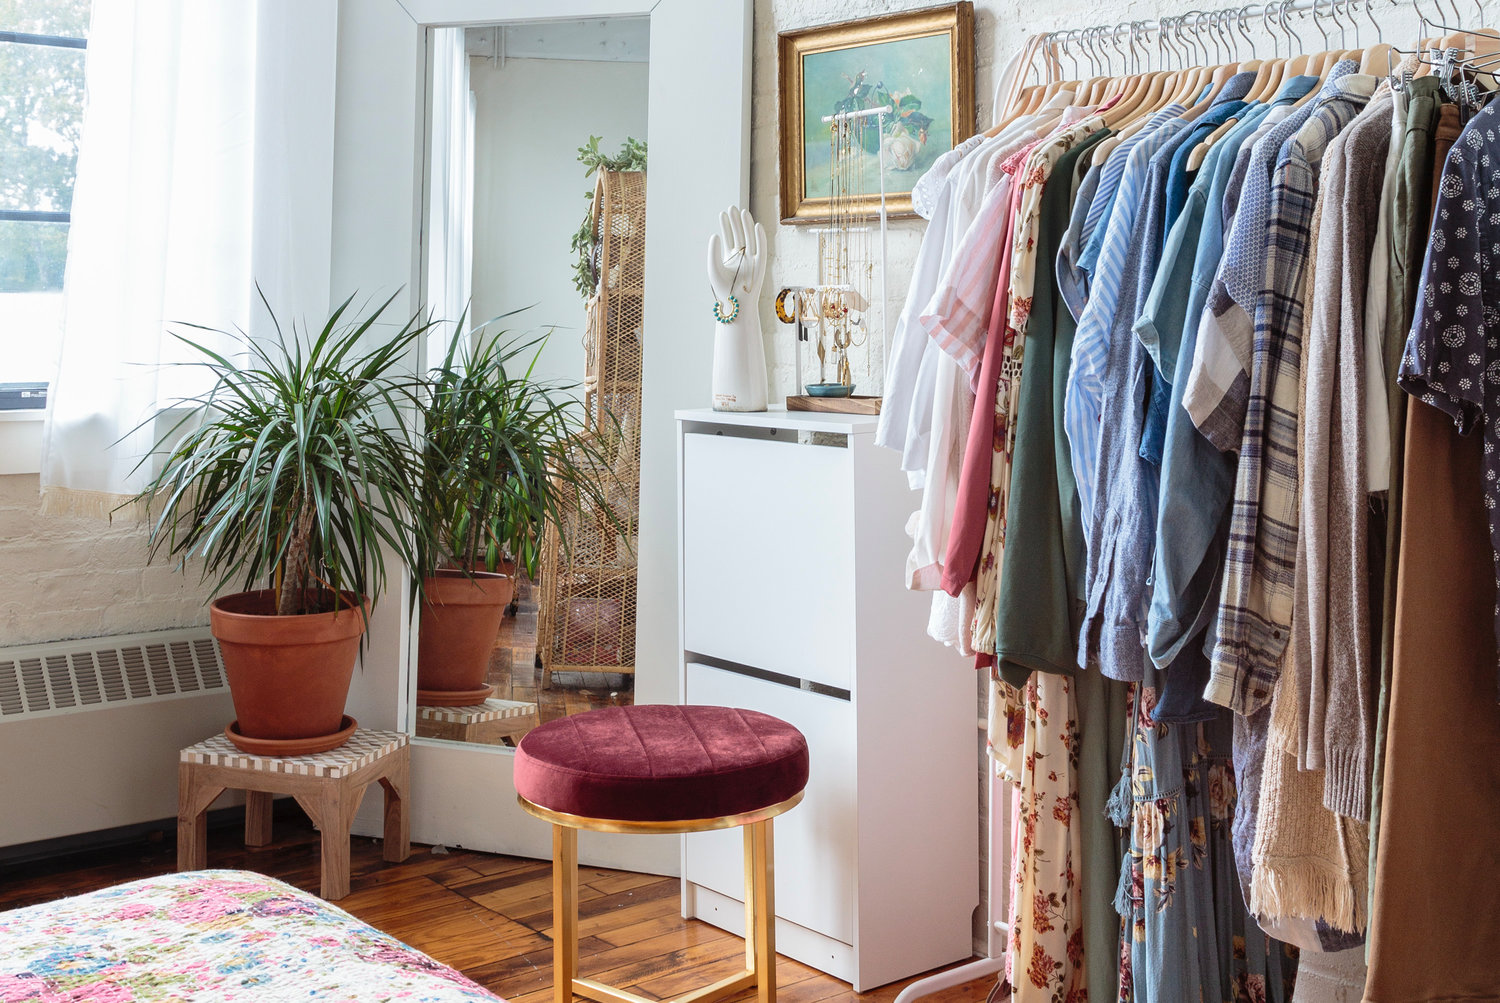 A garment rack stands in for closet space.